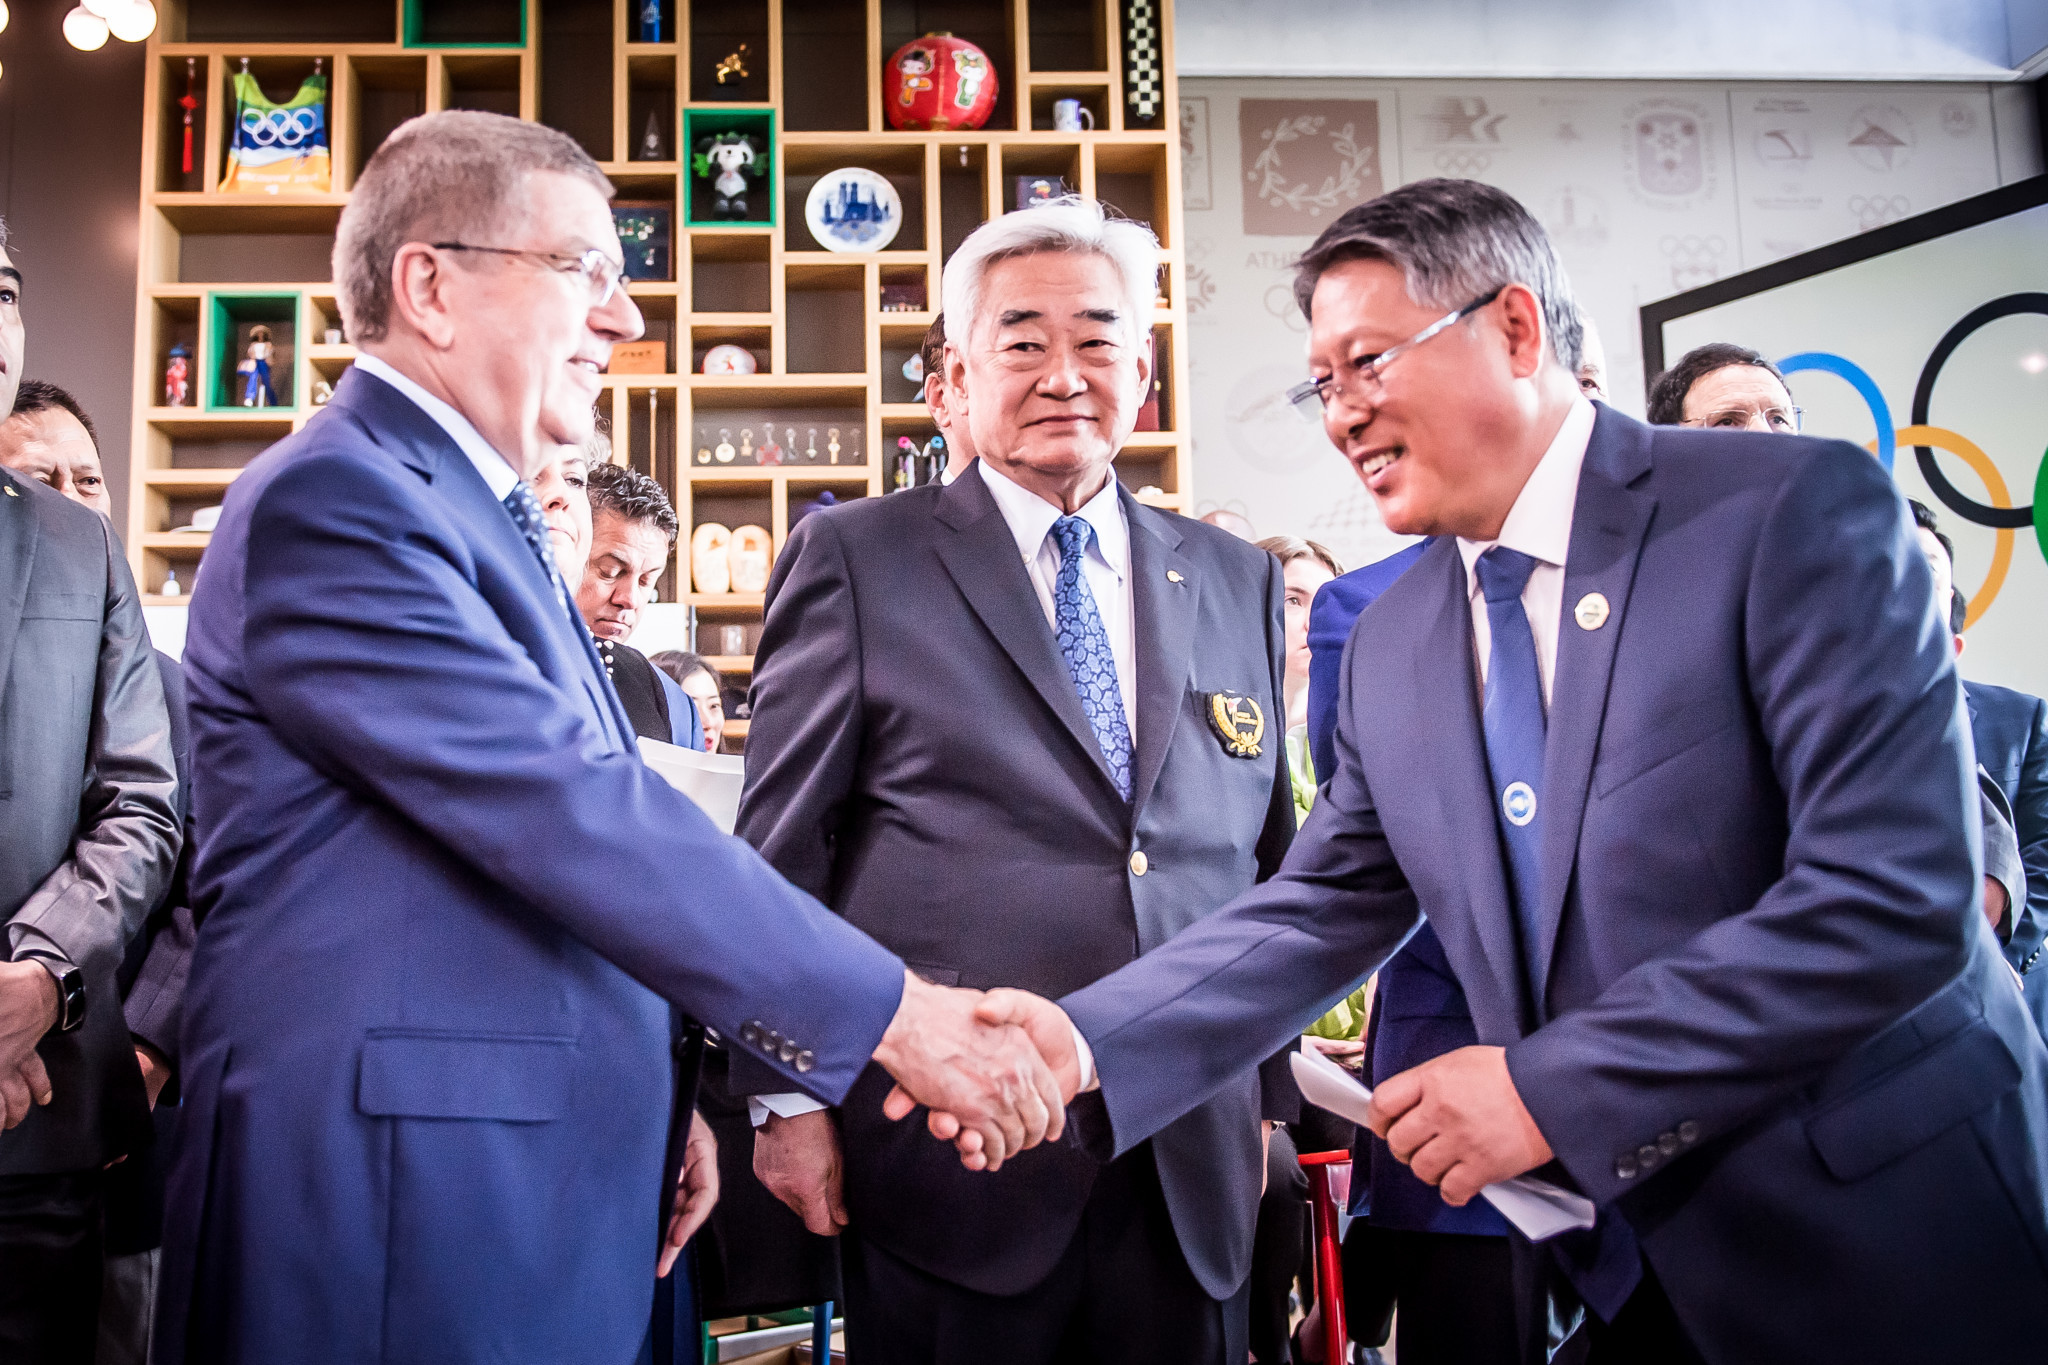 IOC President Thomas Bach, WT President Choue Chung-won and ITF President Ri Yong-son were present at the joint demonstration ©World Taekwondo